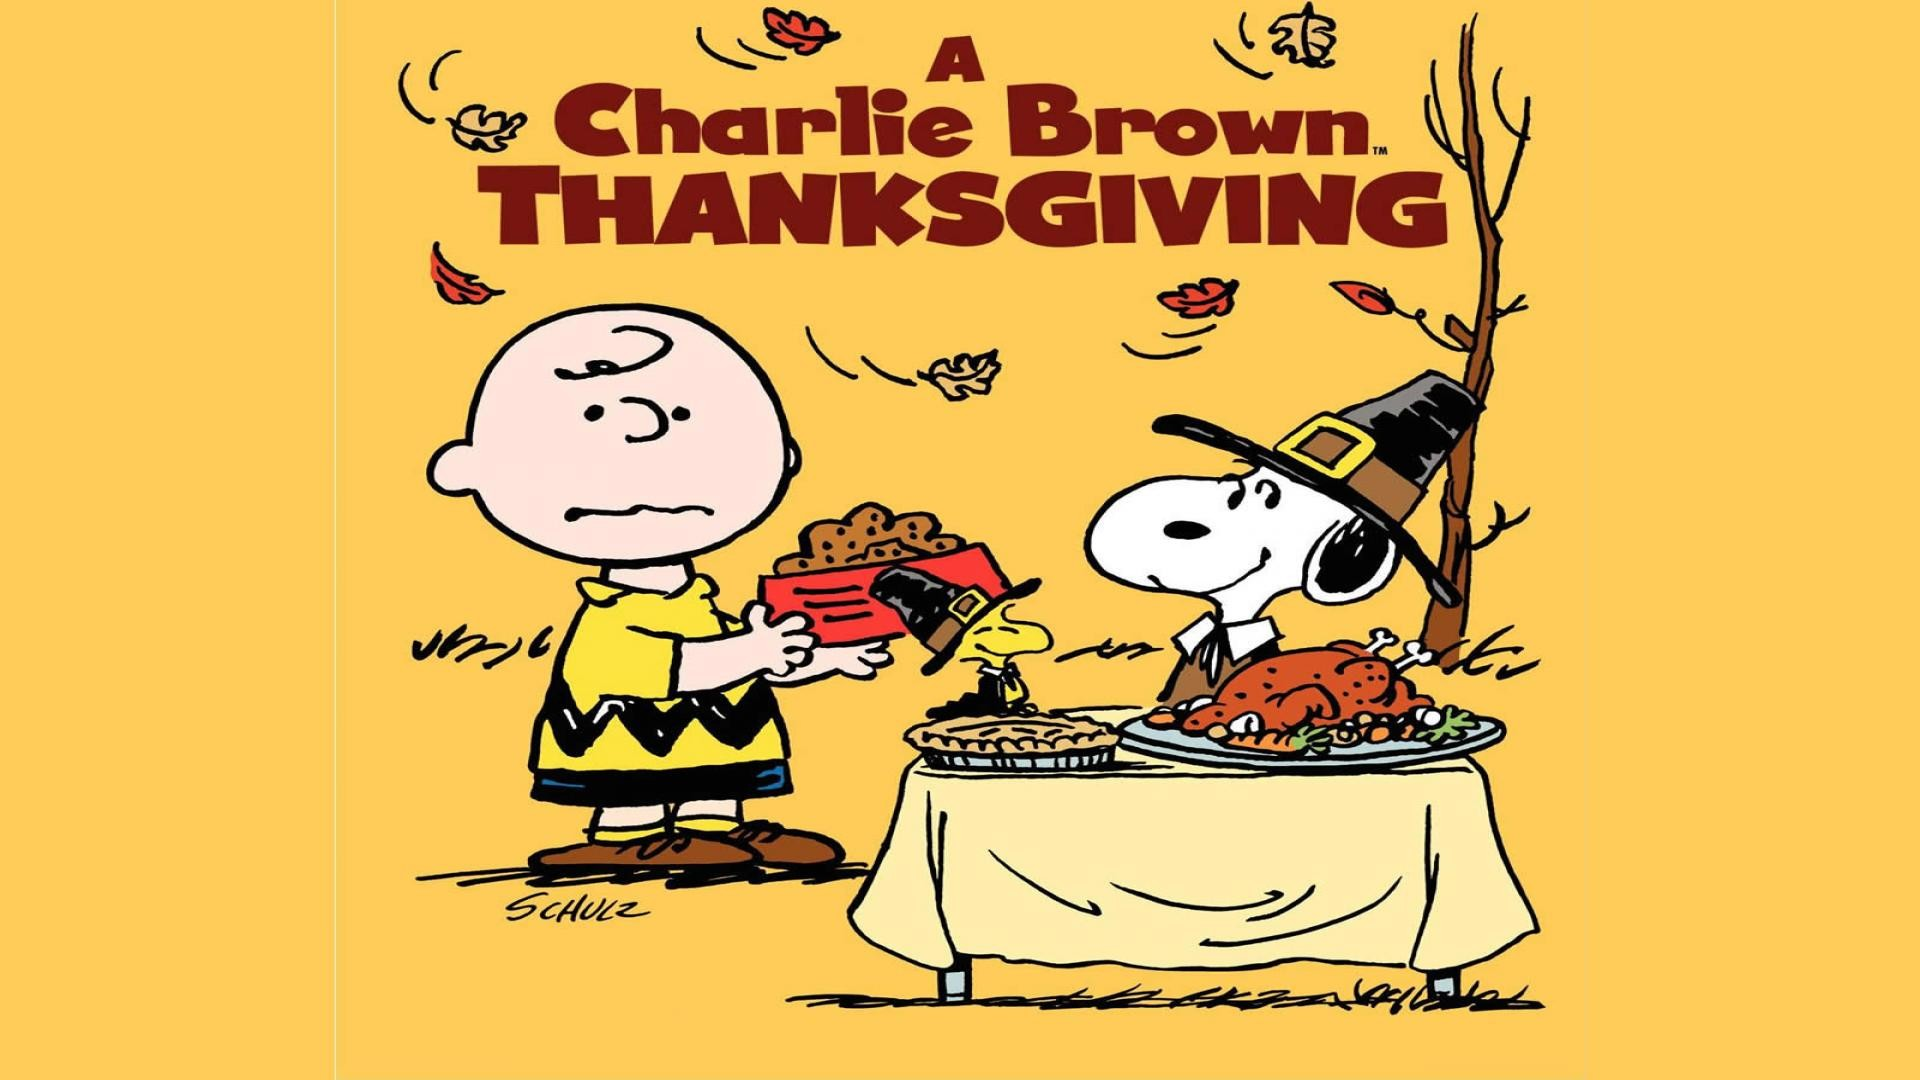 1920x1080, Snoopy Thanksgiving Wallpapers - Charlie Brown Thanksgiving Poster - HD Wallpaper